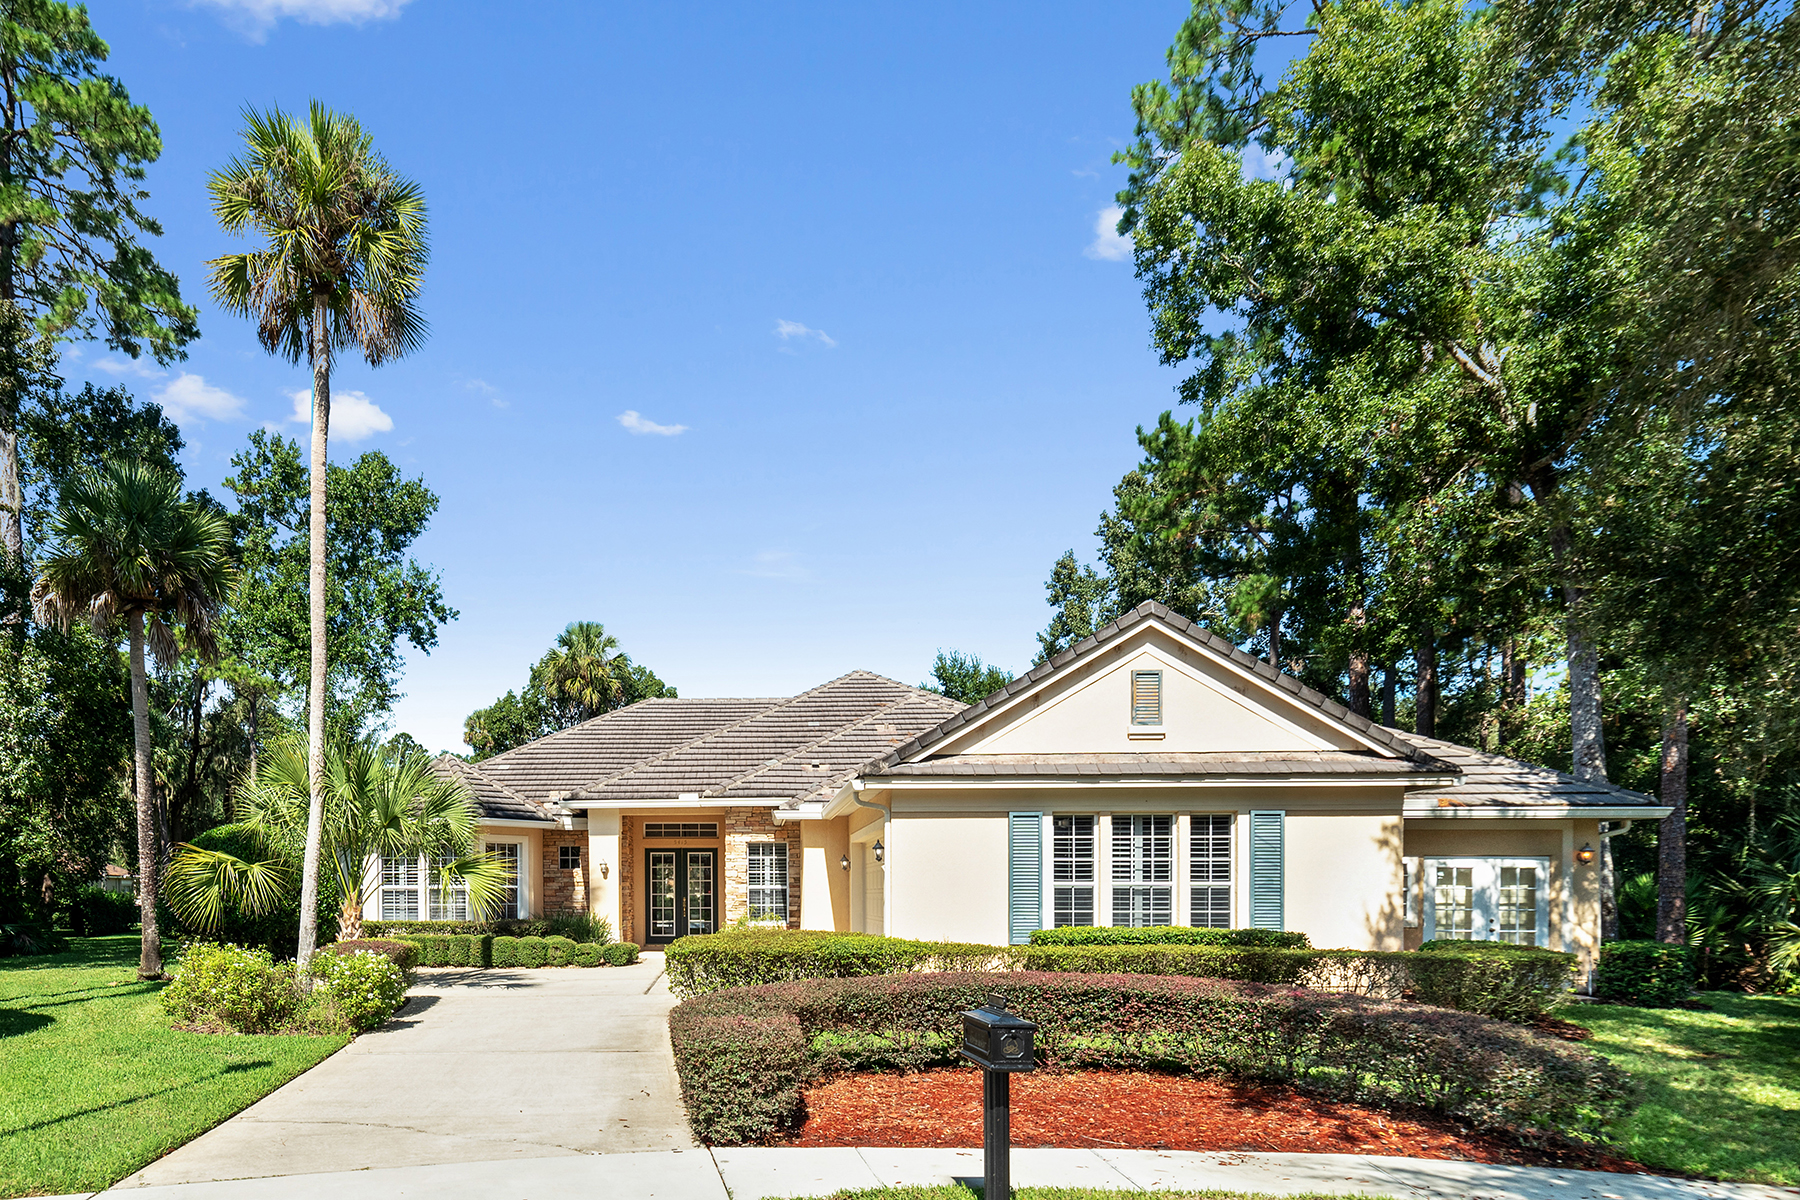 Single Family Homes for Sale at ORLANDO - SANFORD - LAKE FOREST 5415 Fawn Lake Ct Sanford, Florida 32771 United States